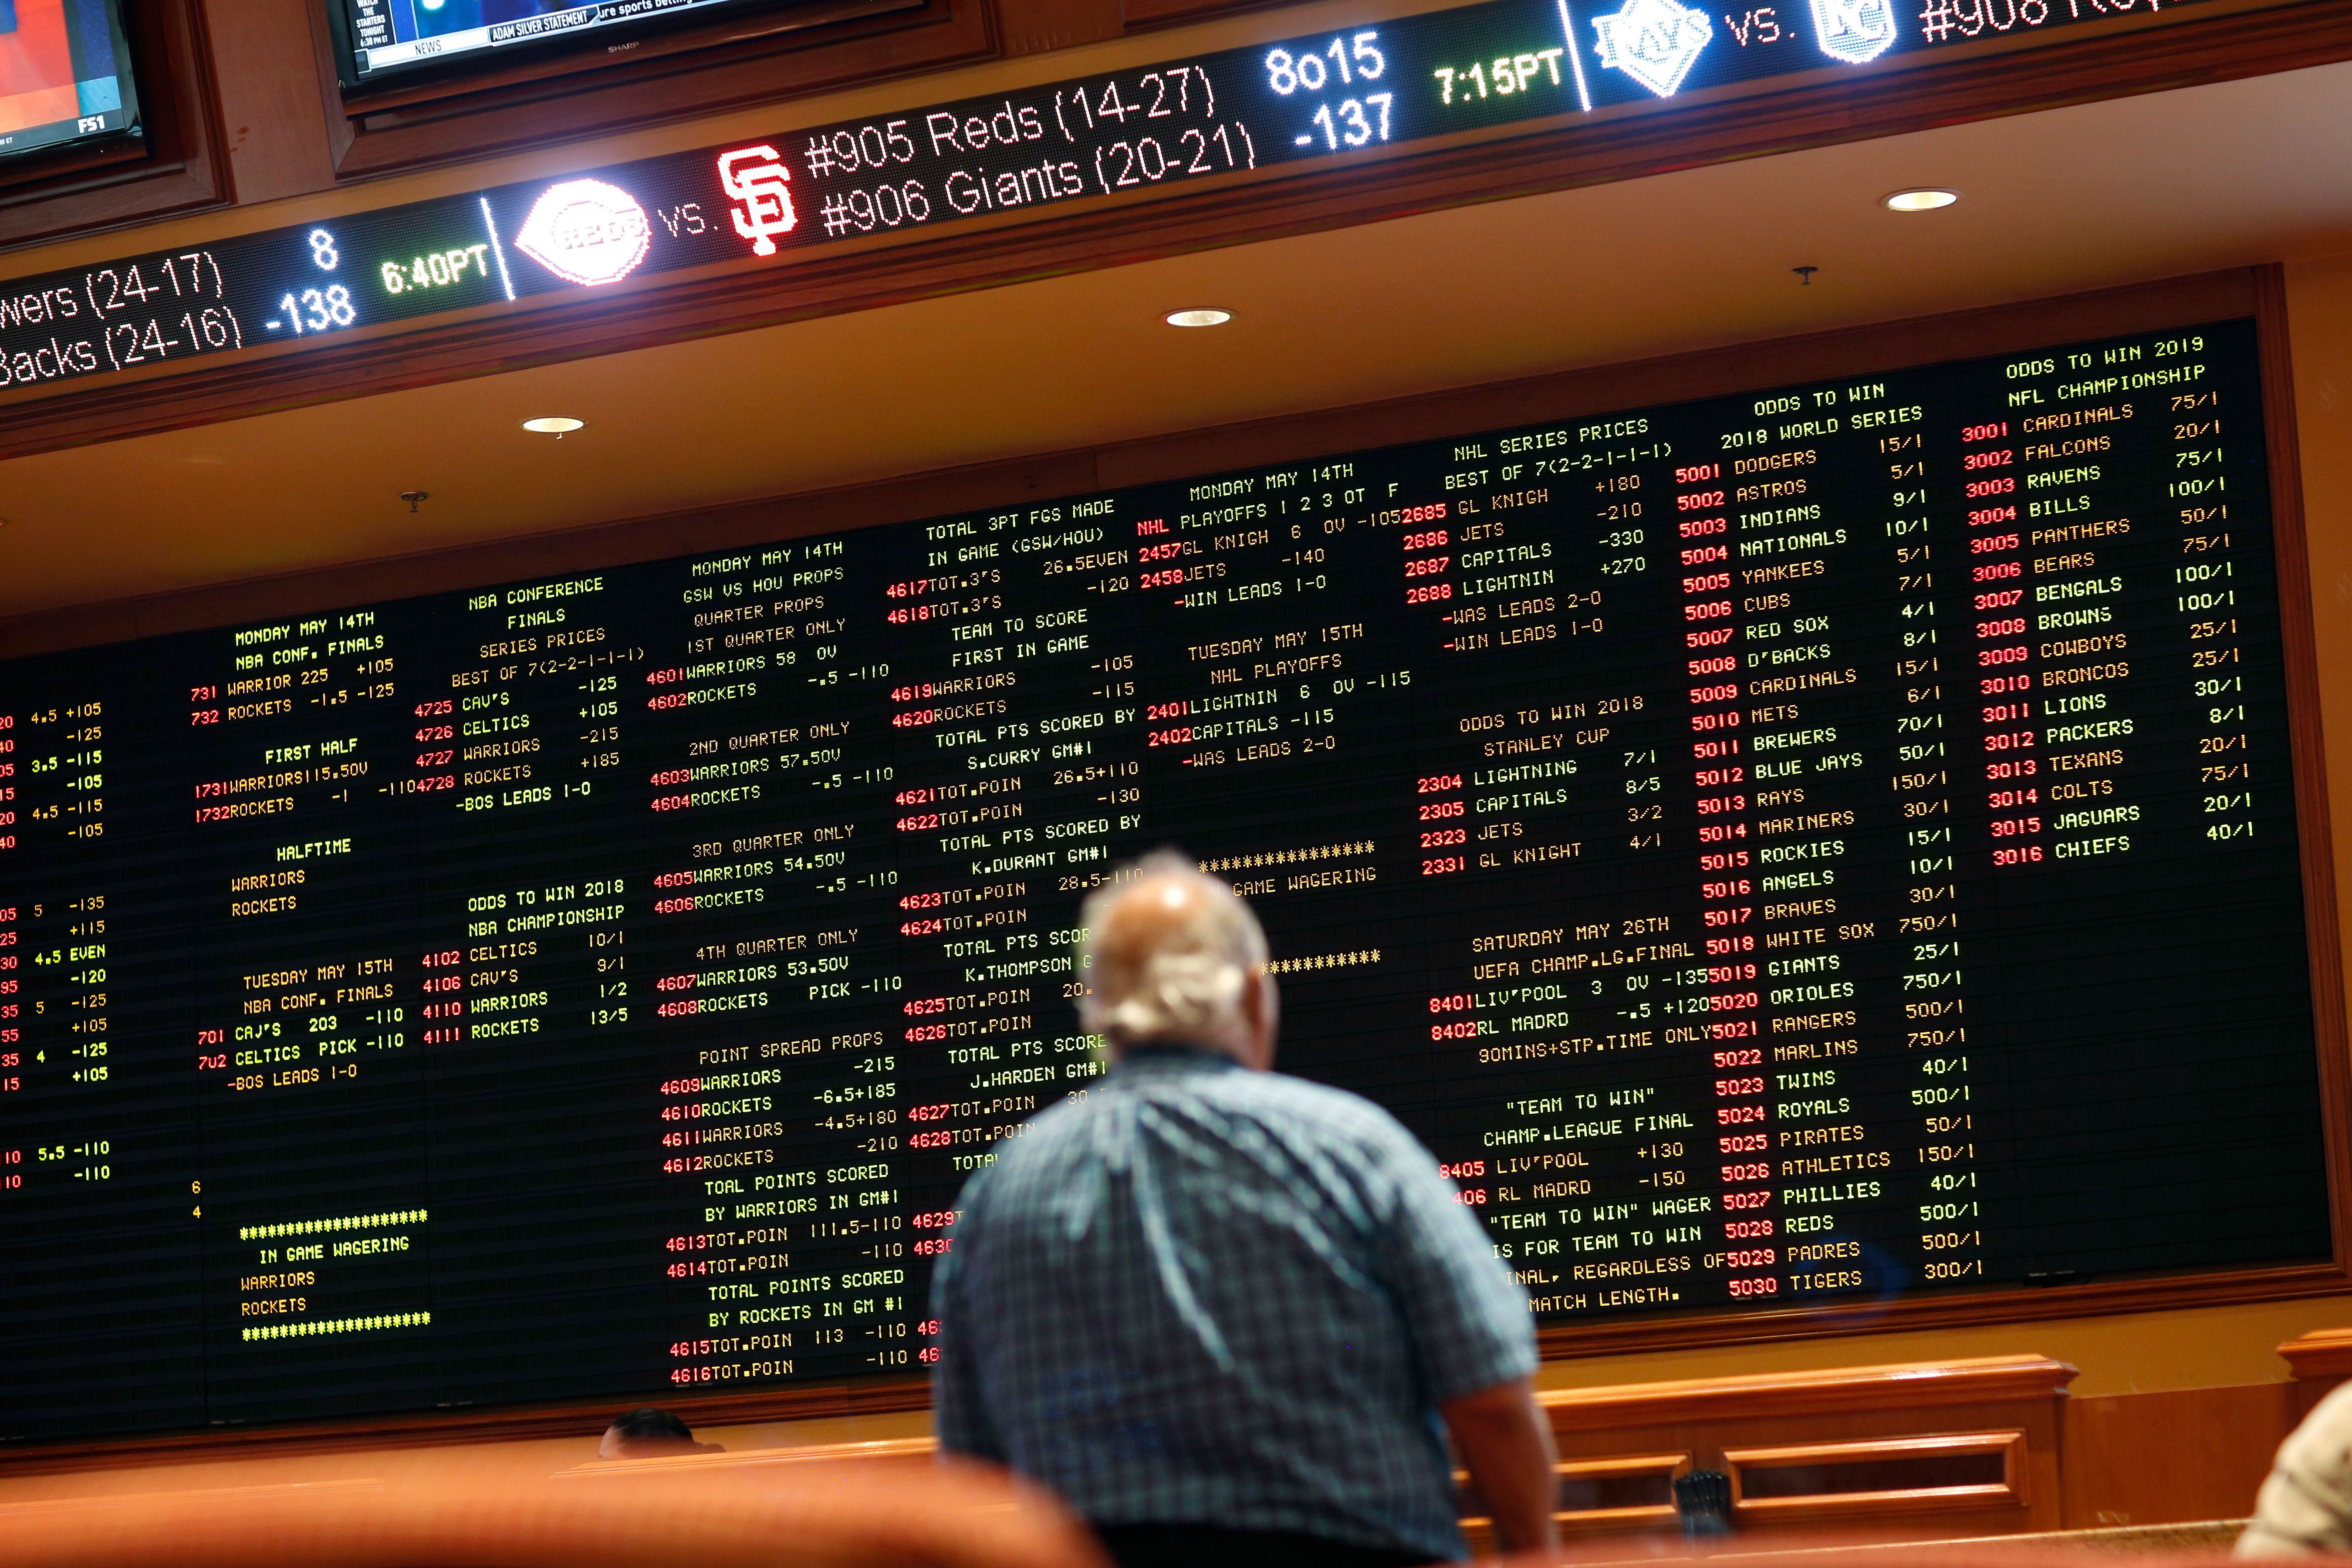 <p>Betting odds are displayed on a board in the sports book at the South Point hotel and casino in Las Vegas, May 14, 2018.</p>